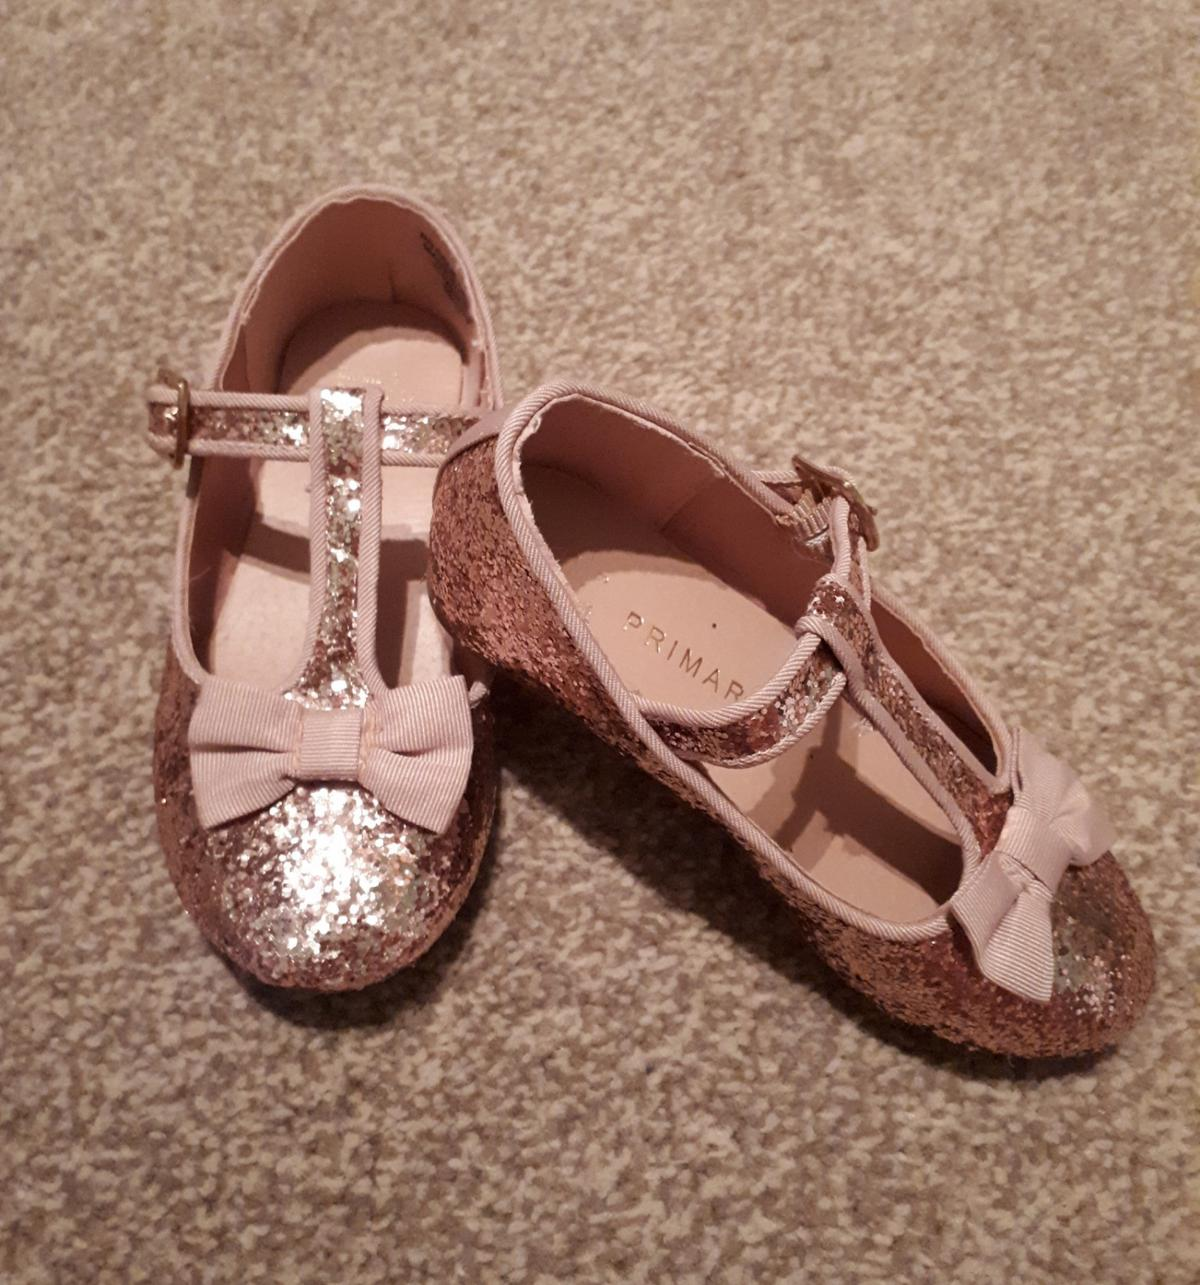 44b0dcb8 Girls glittery party shoes in B36 Solihull for £3.00 for sale - Shpock